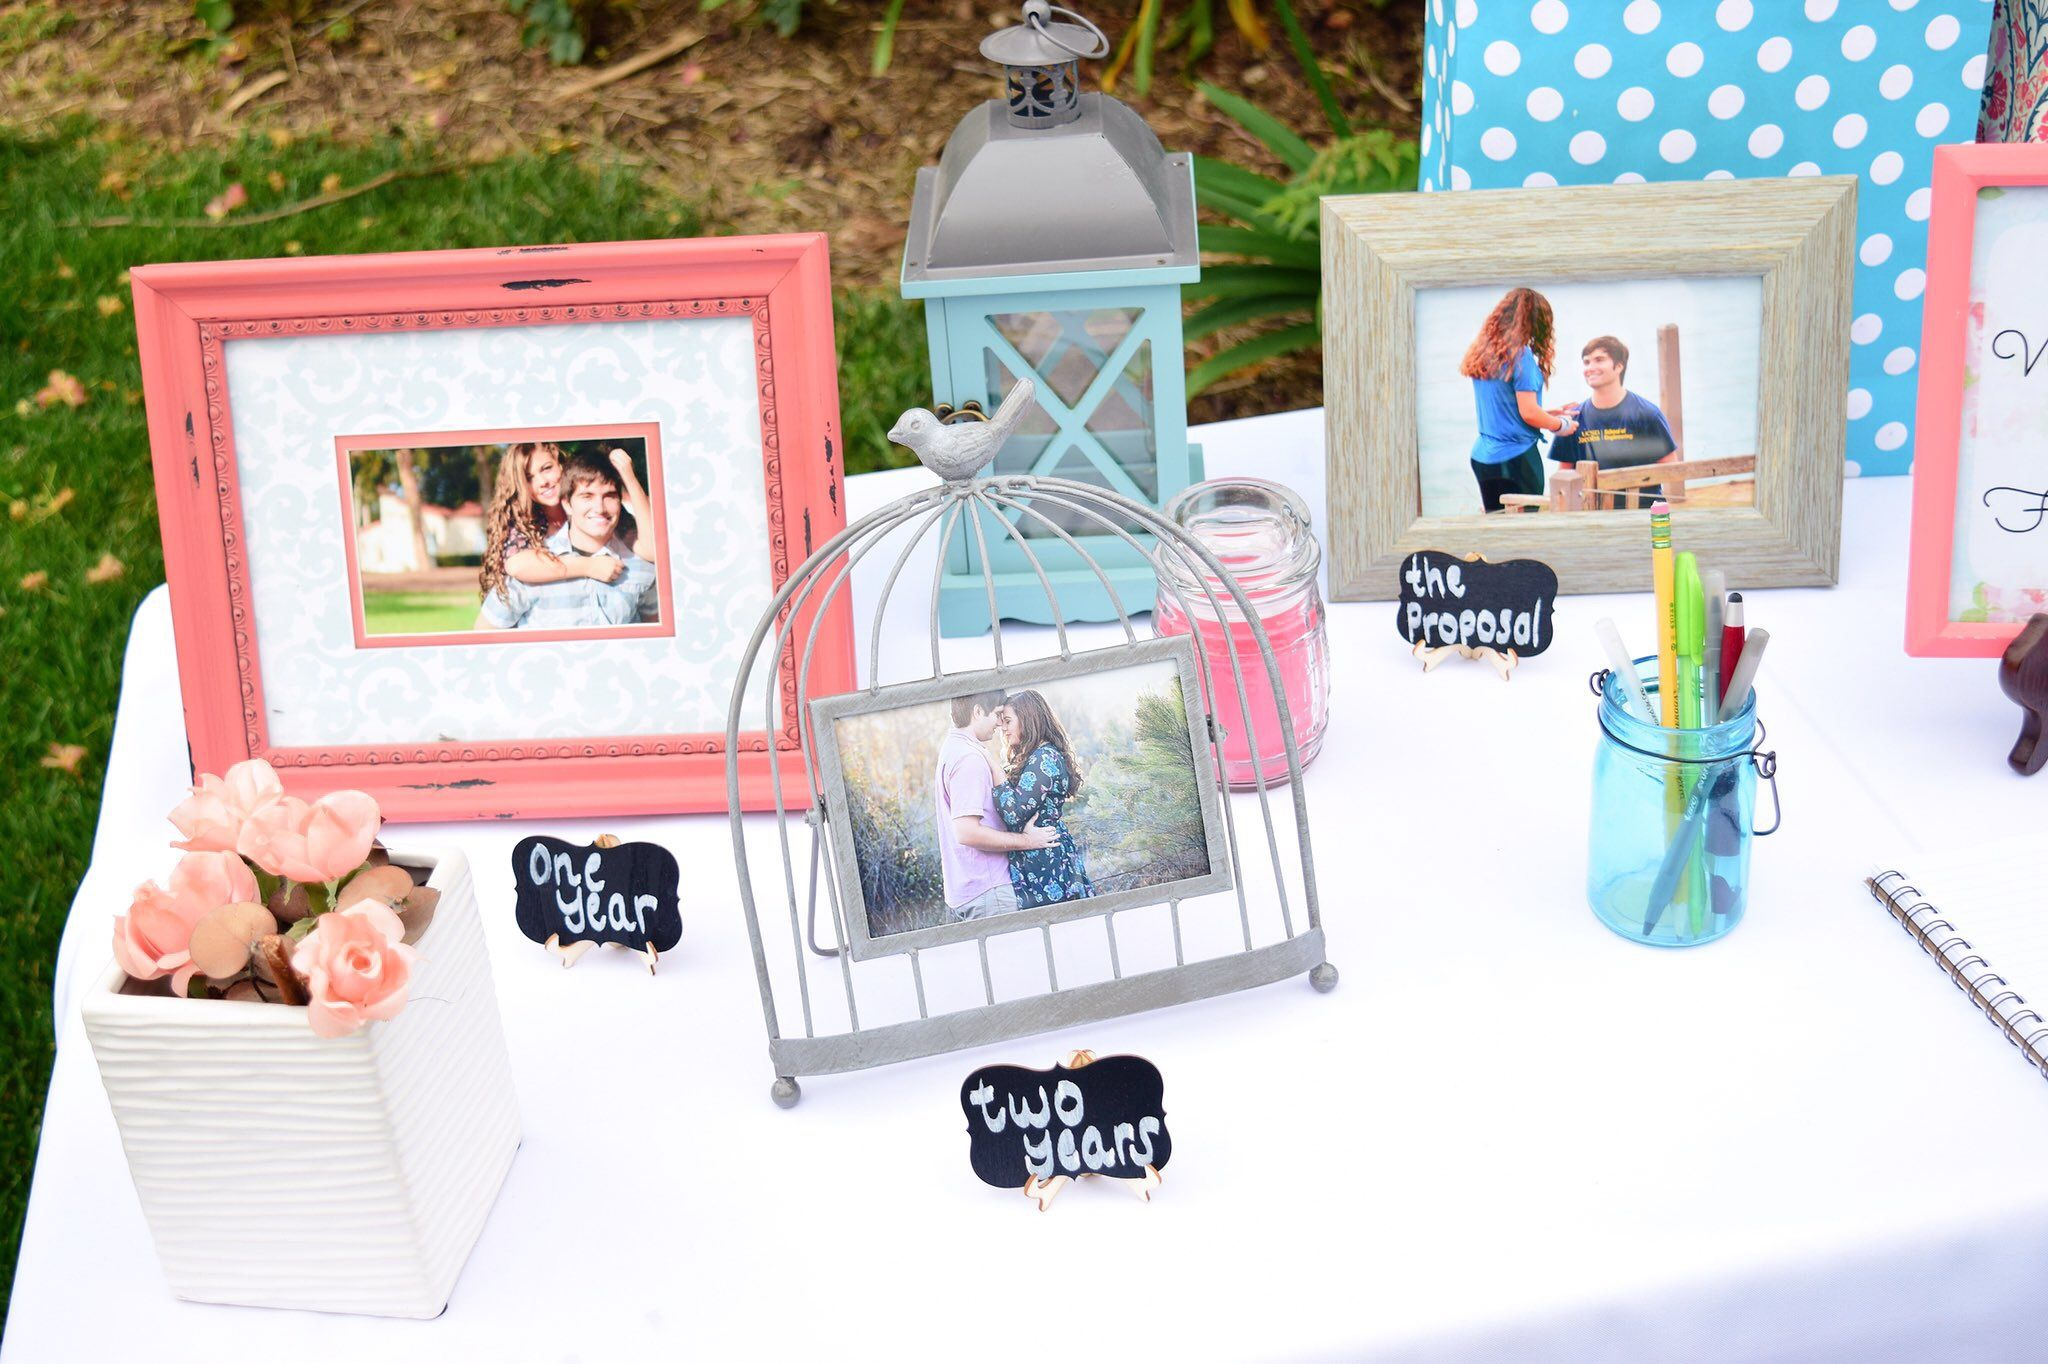 Wedding Gift Table Decorations Sign And Ideas Beauteous Decorate Your Engagement Party Sign In Table And Gift Table With Inspiration Design